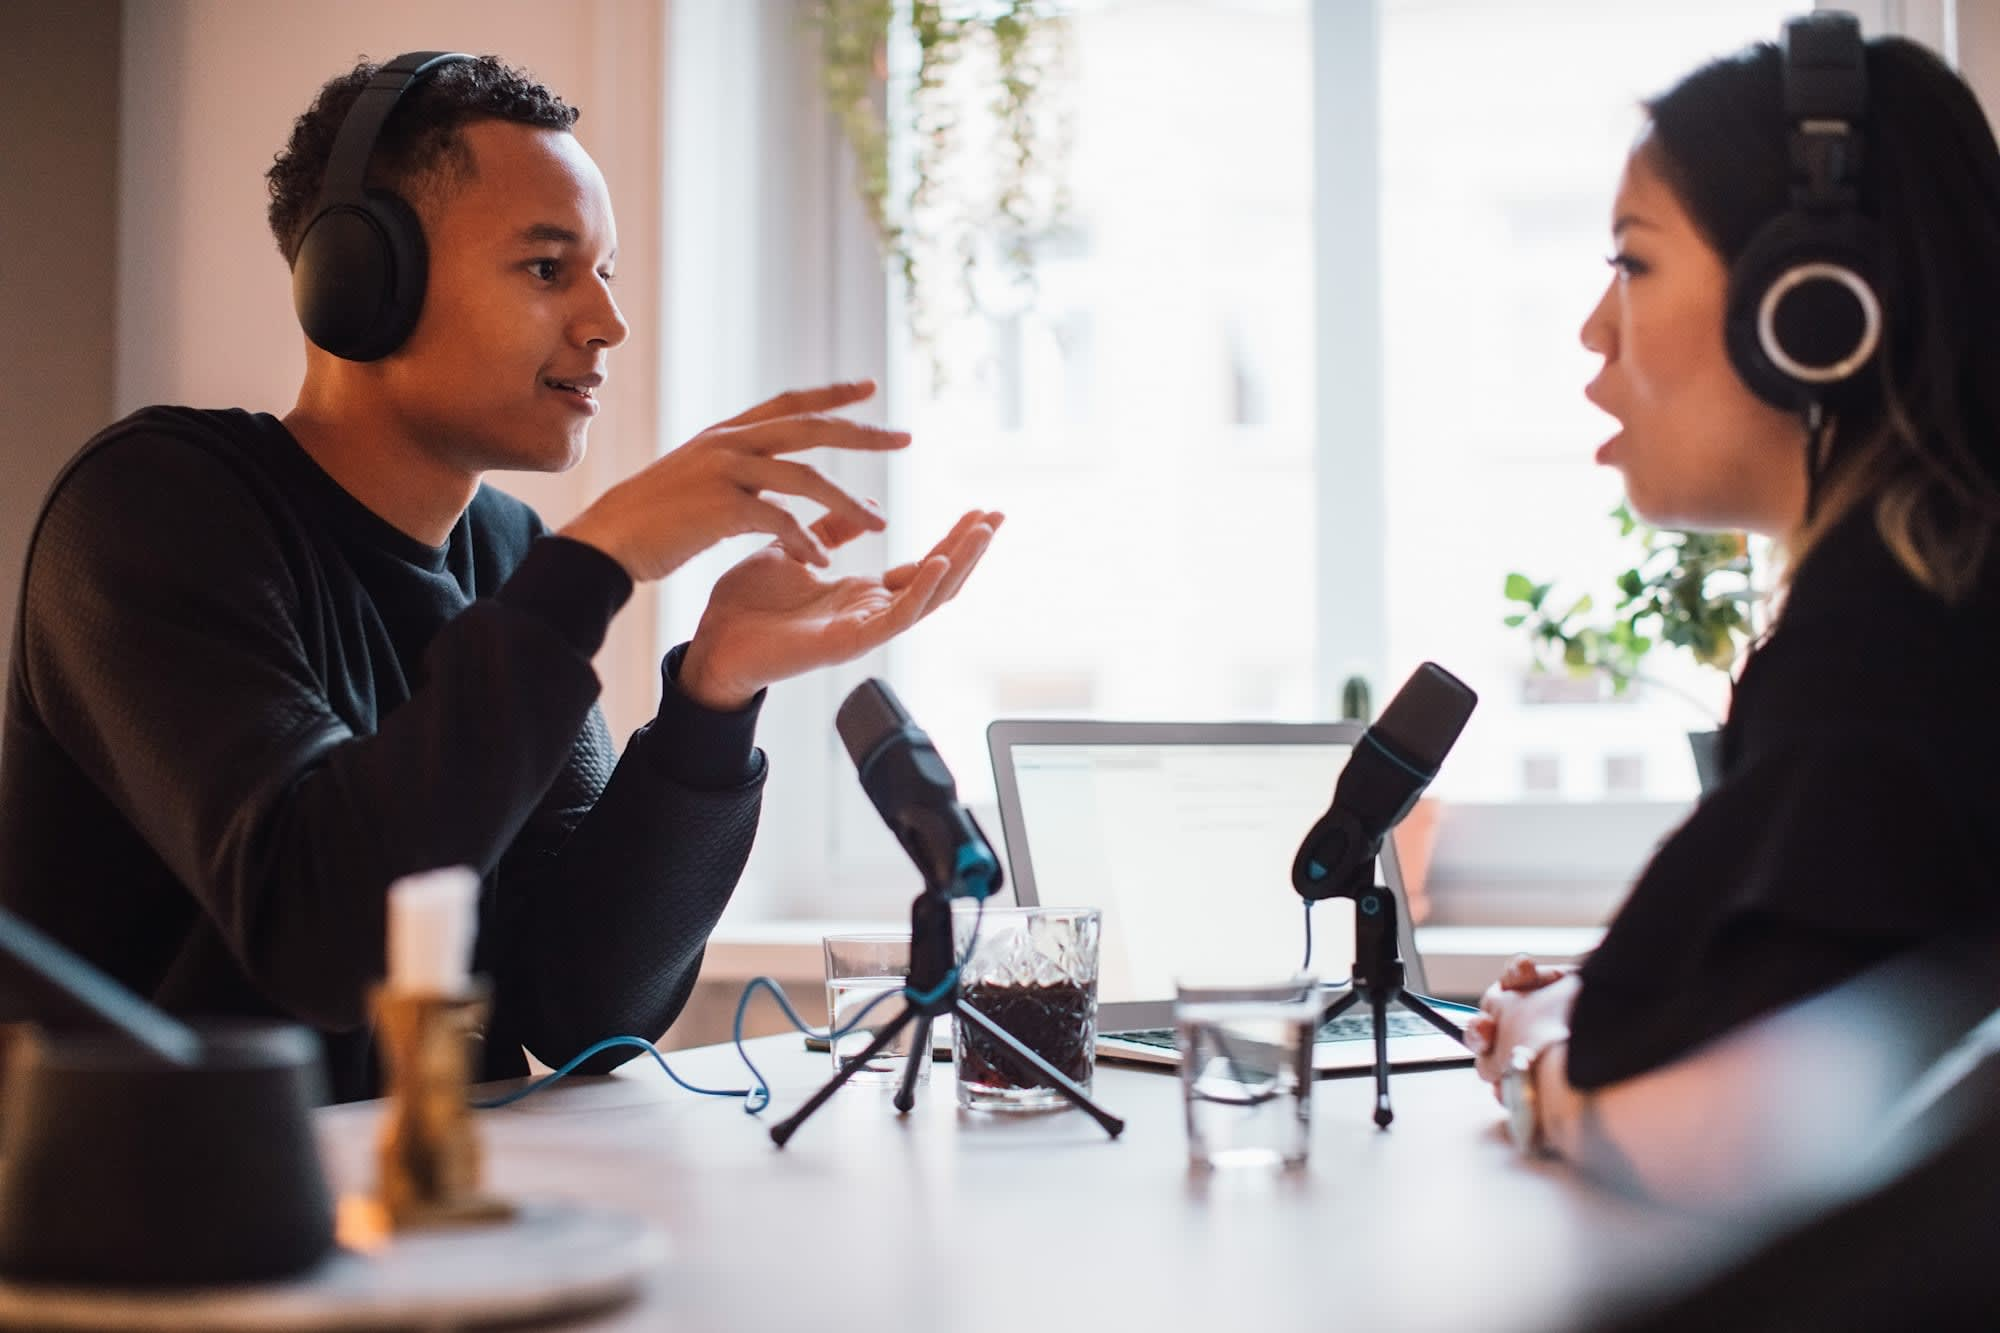 Nielsen wants to track podcast data by... calling people